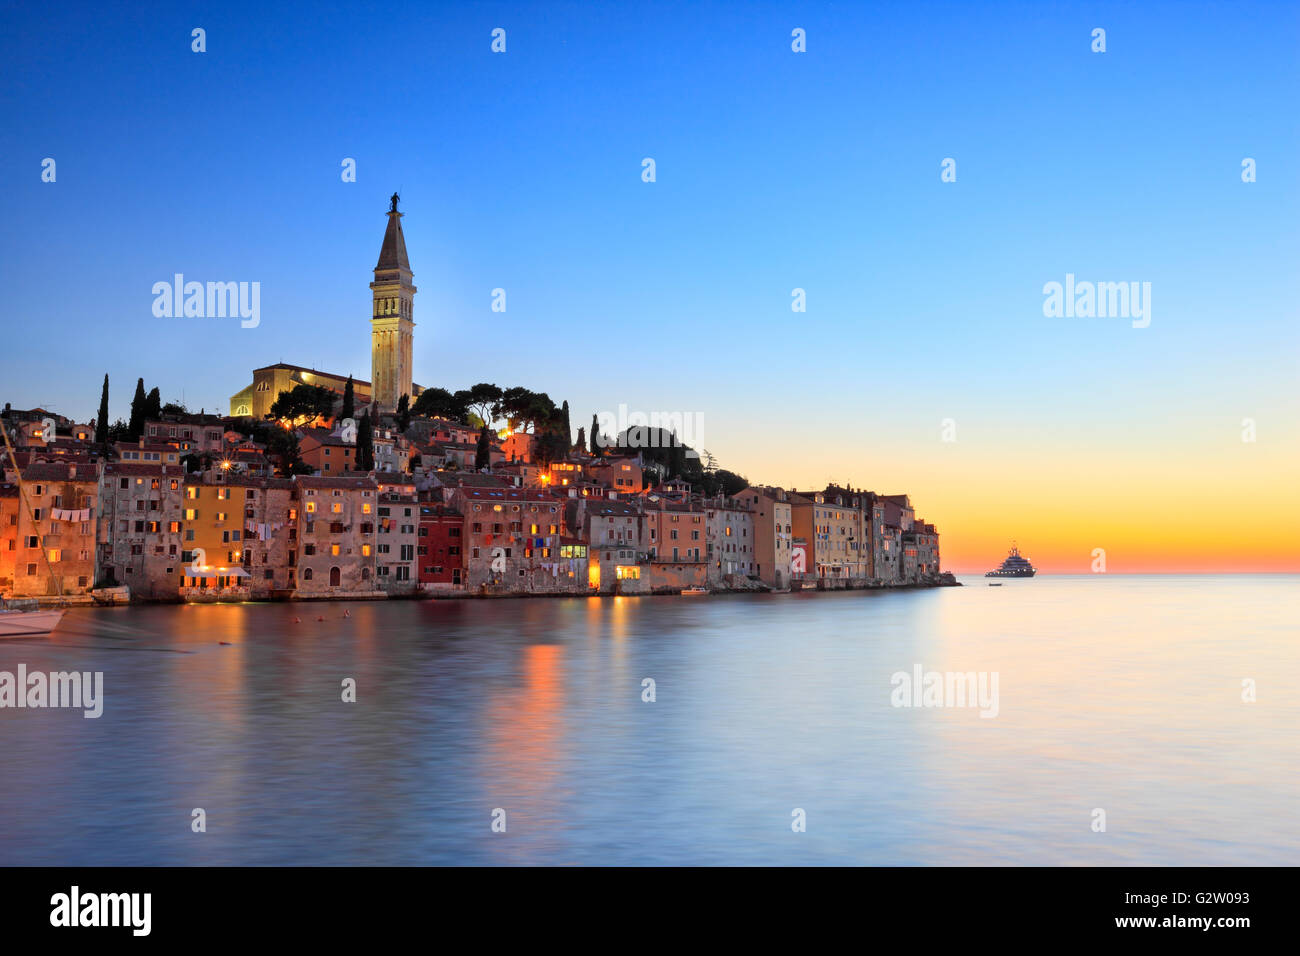 Rvinj town in the night - Stock Image